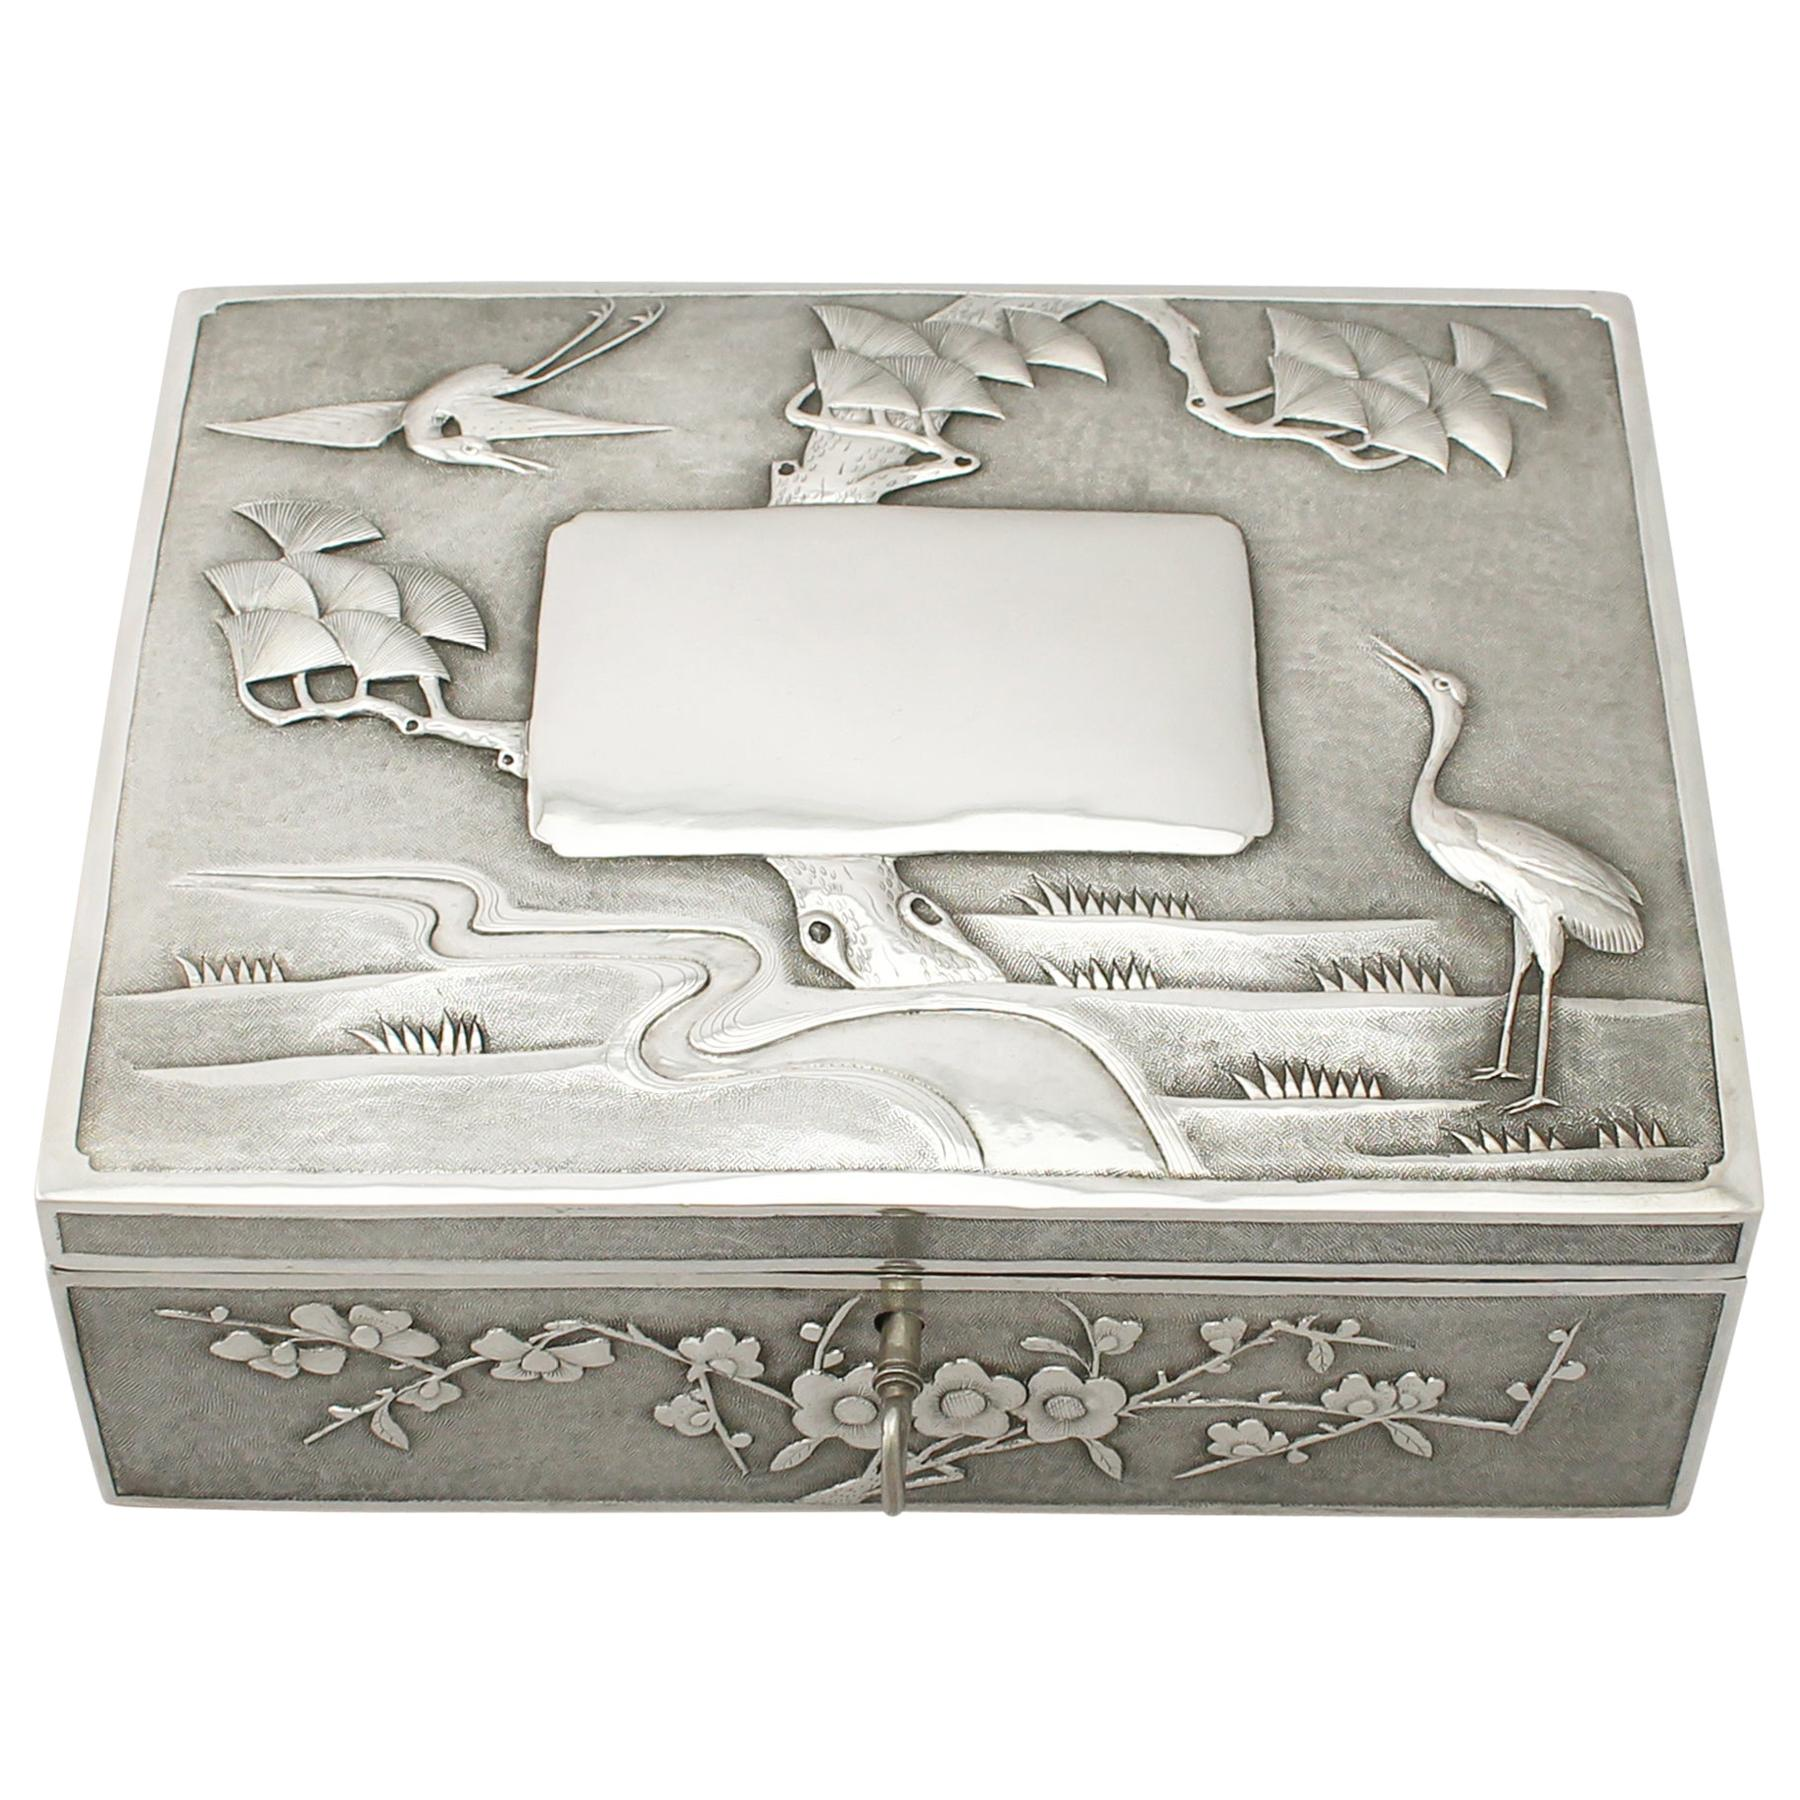 Antique 1890s Chinese Export Silver Locking Box